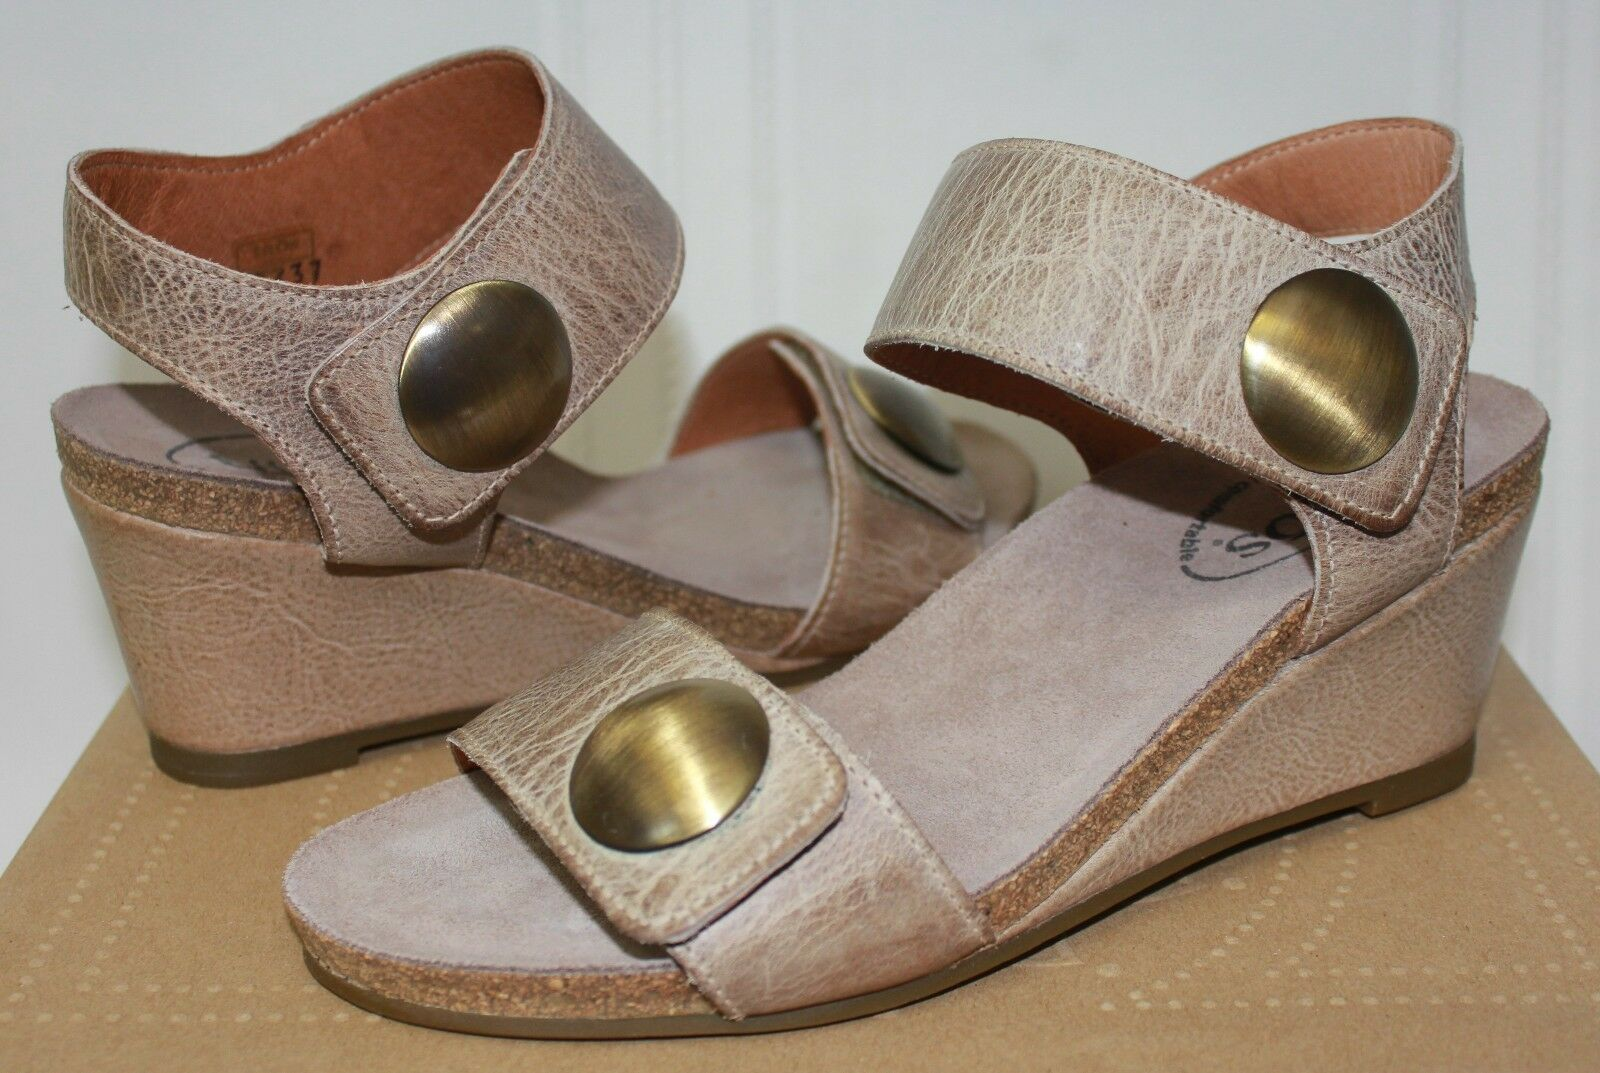 Taos Carousel Taupe Taupe Taupe Leather Wedge Sandal schuhe New With Box a840a1